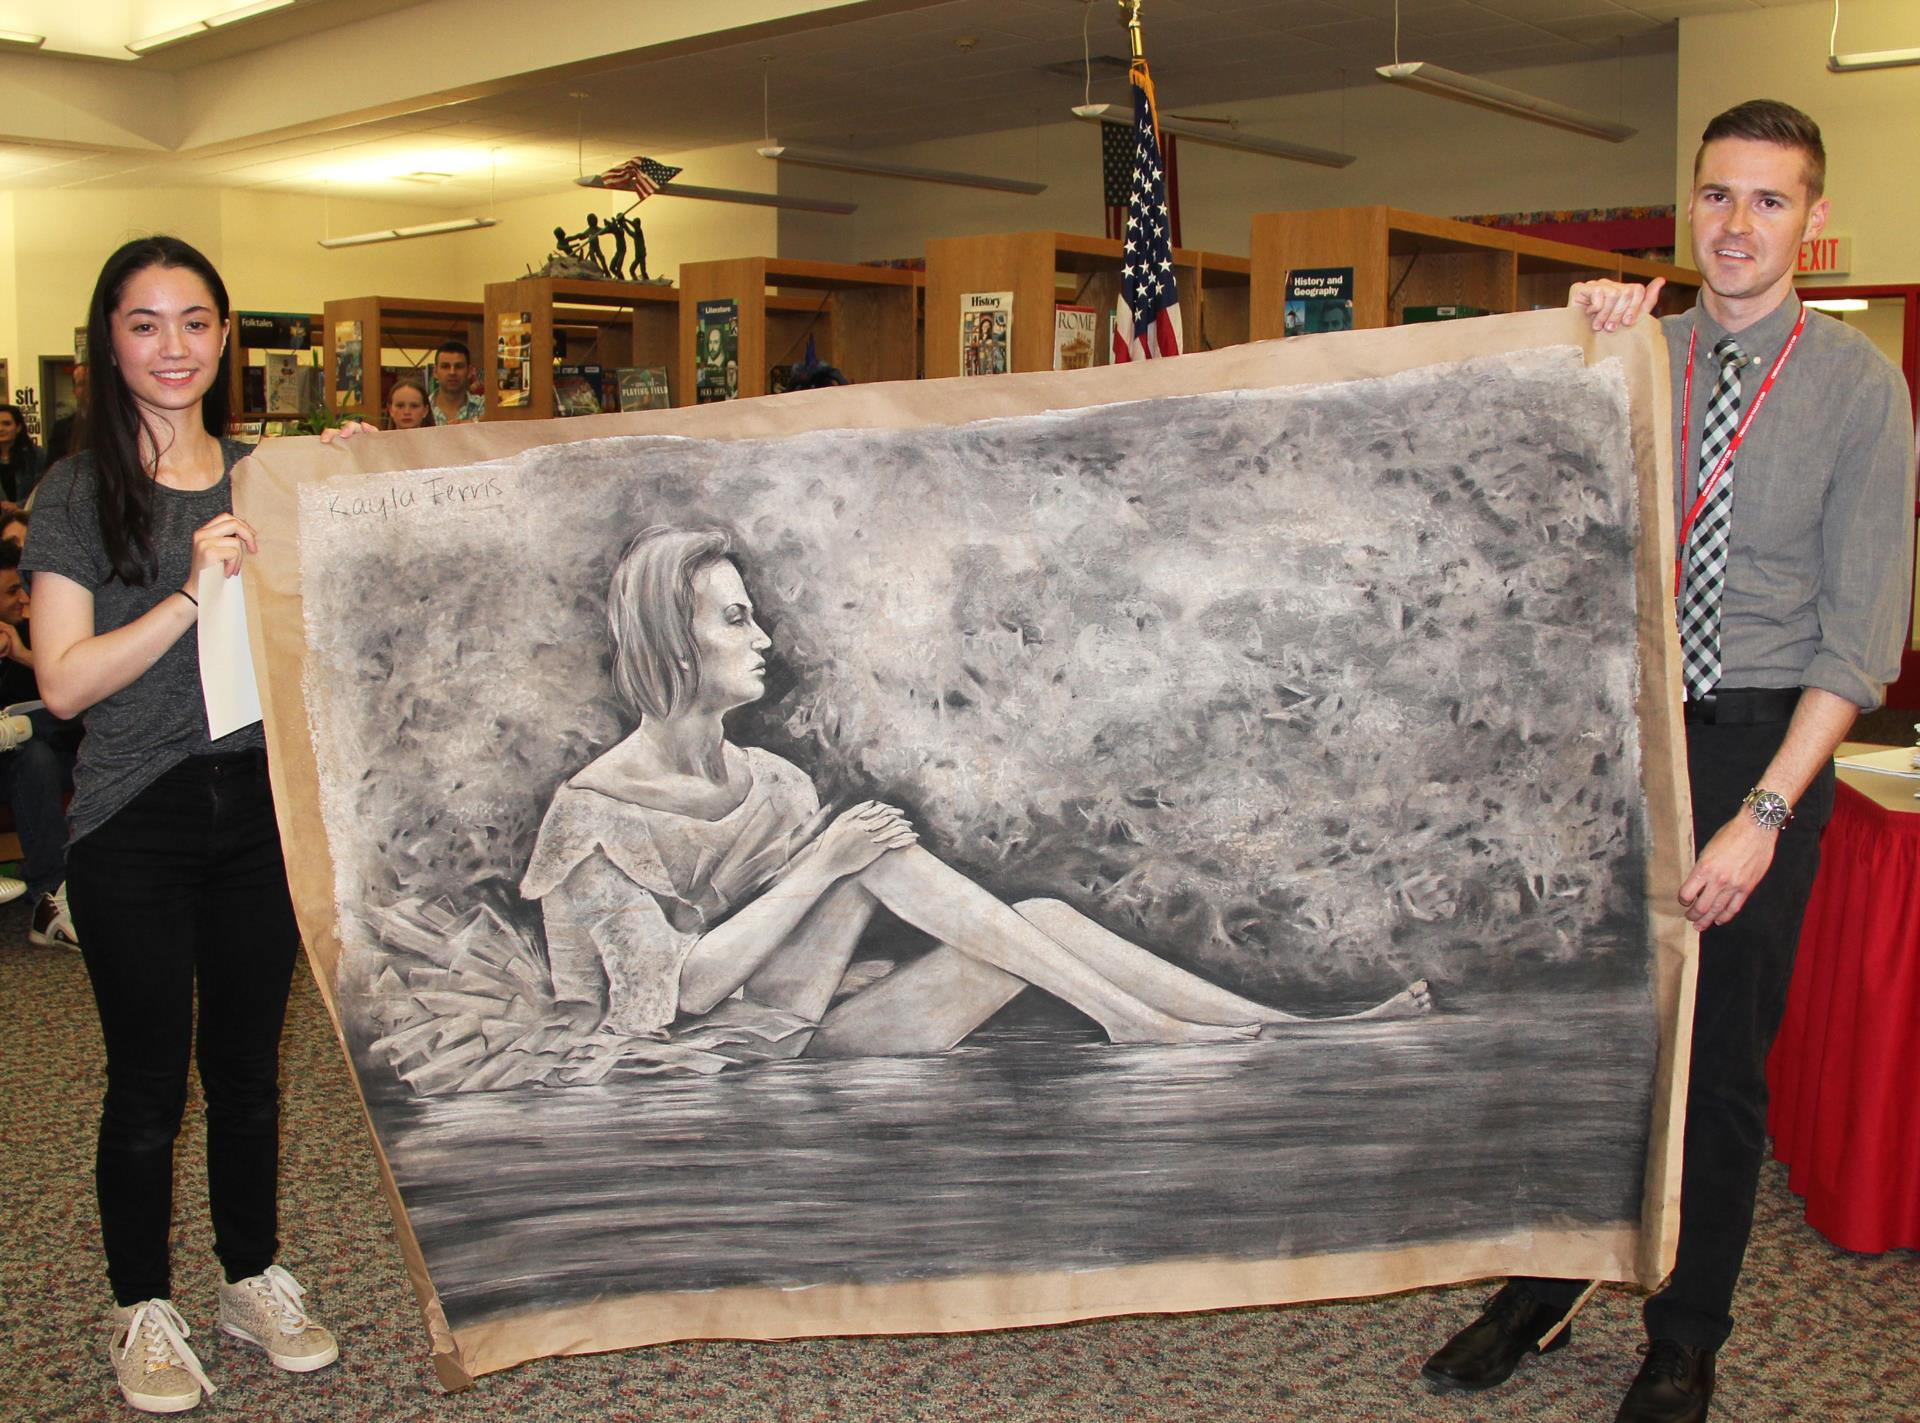 kayla ferris and mister wilson with kaylas drawing from 24 hour drawing marathon